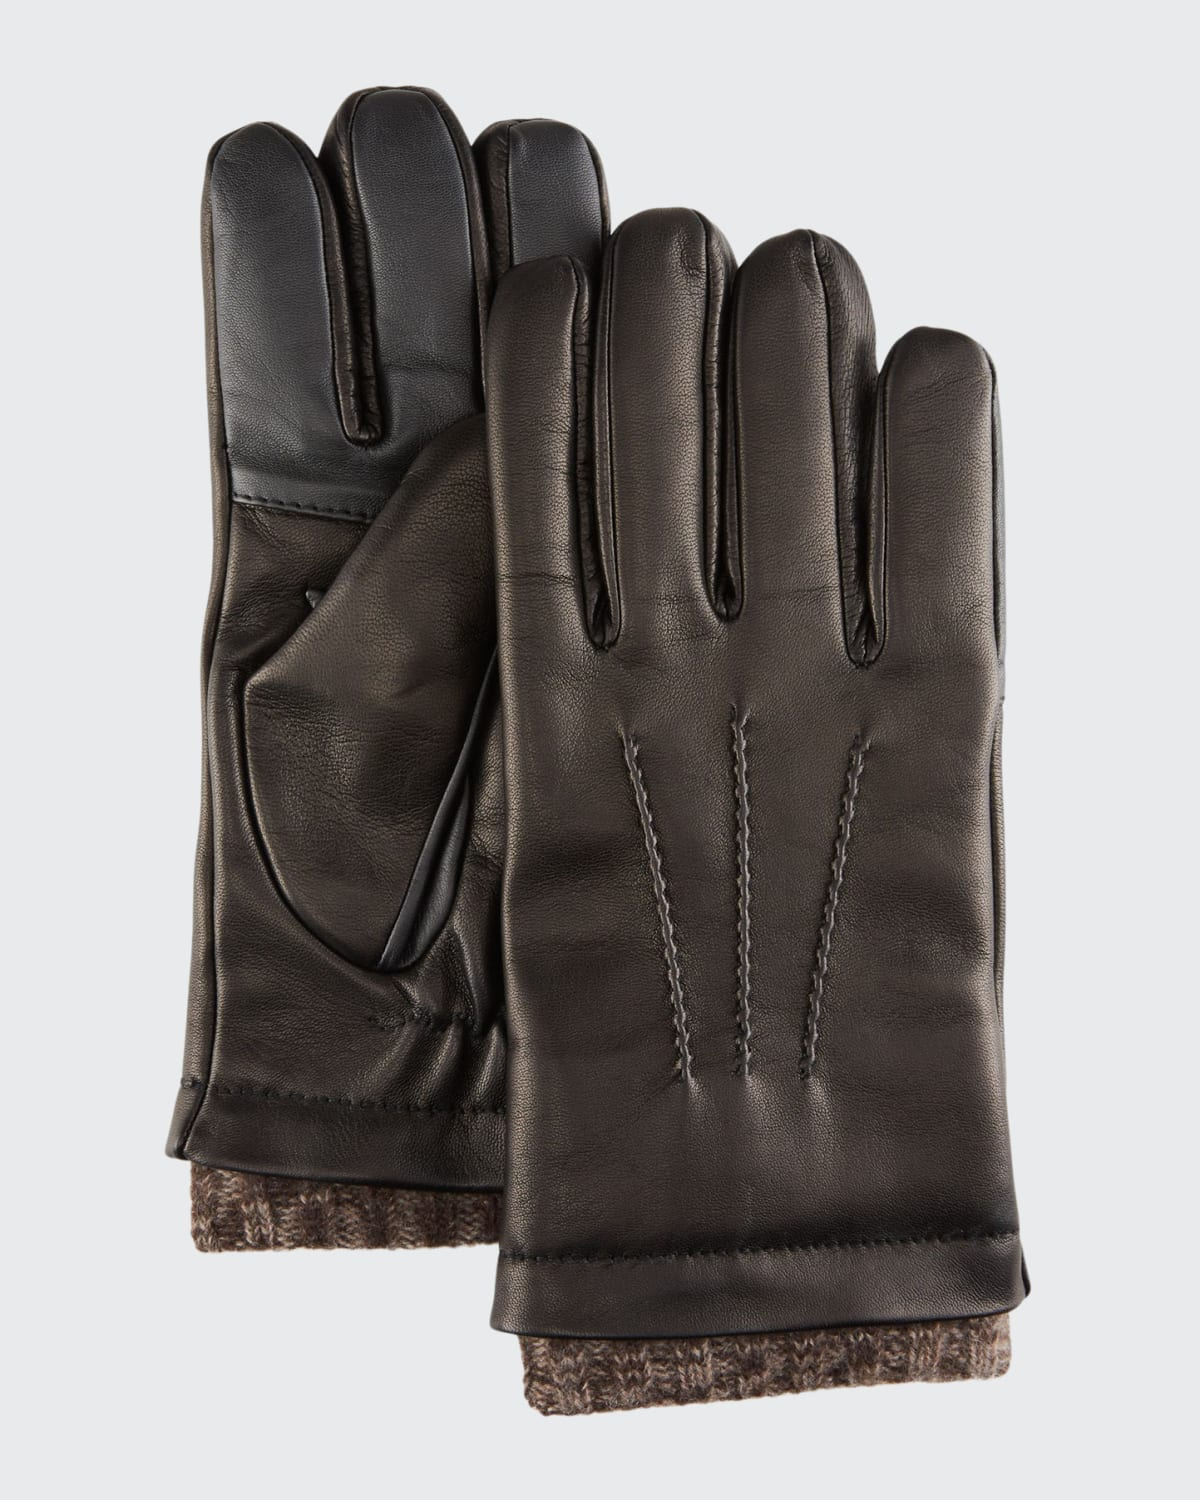 Men's Leather Gloves w/ Knit Lining